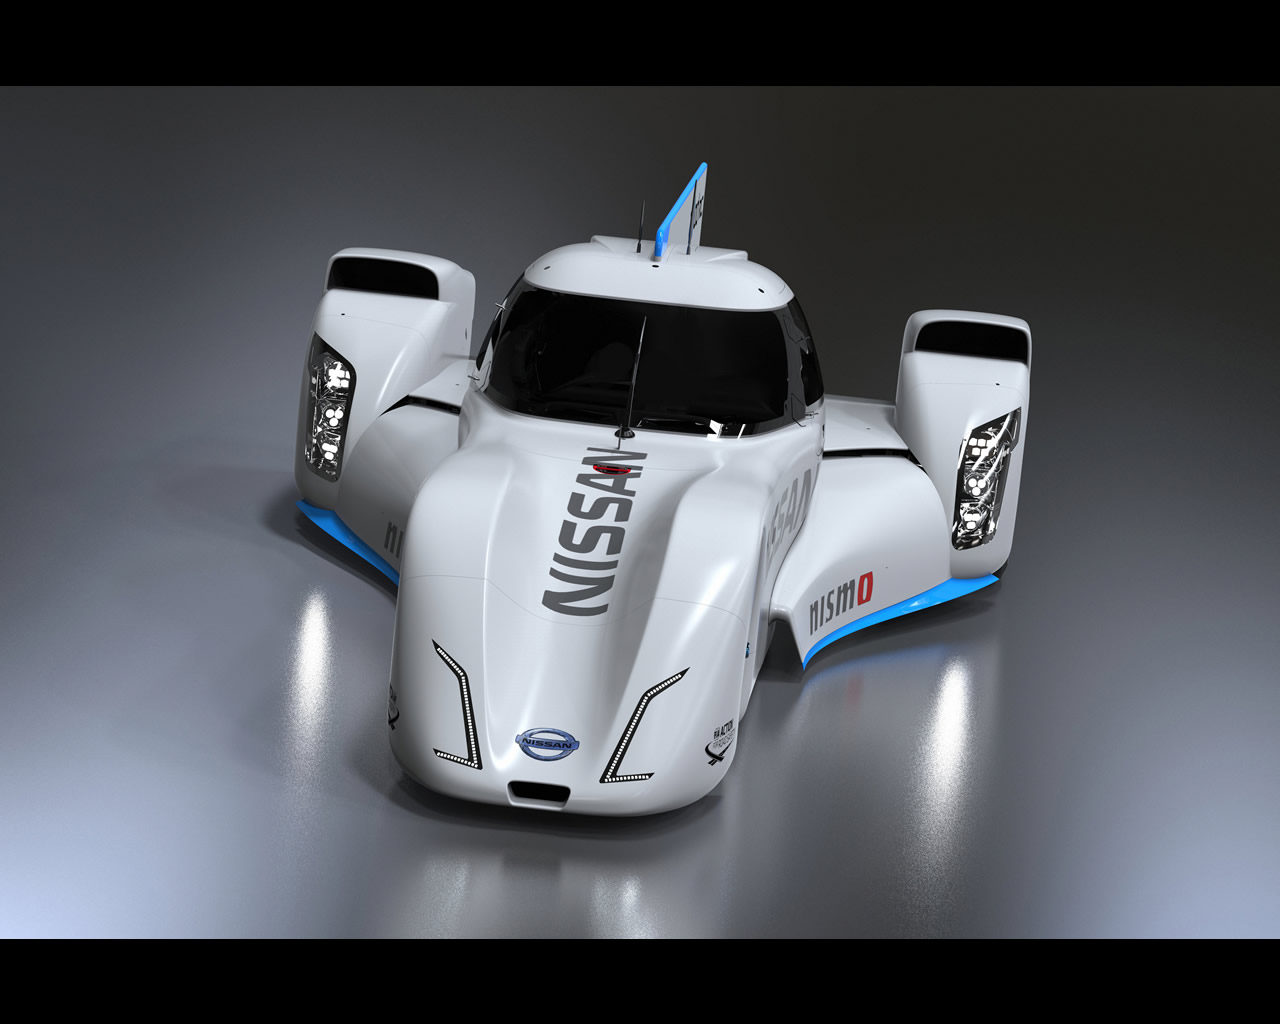 NISSAN NISMO ZEOD RC Hybrid Electric Racing Car Le Mans 2014